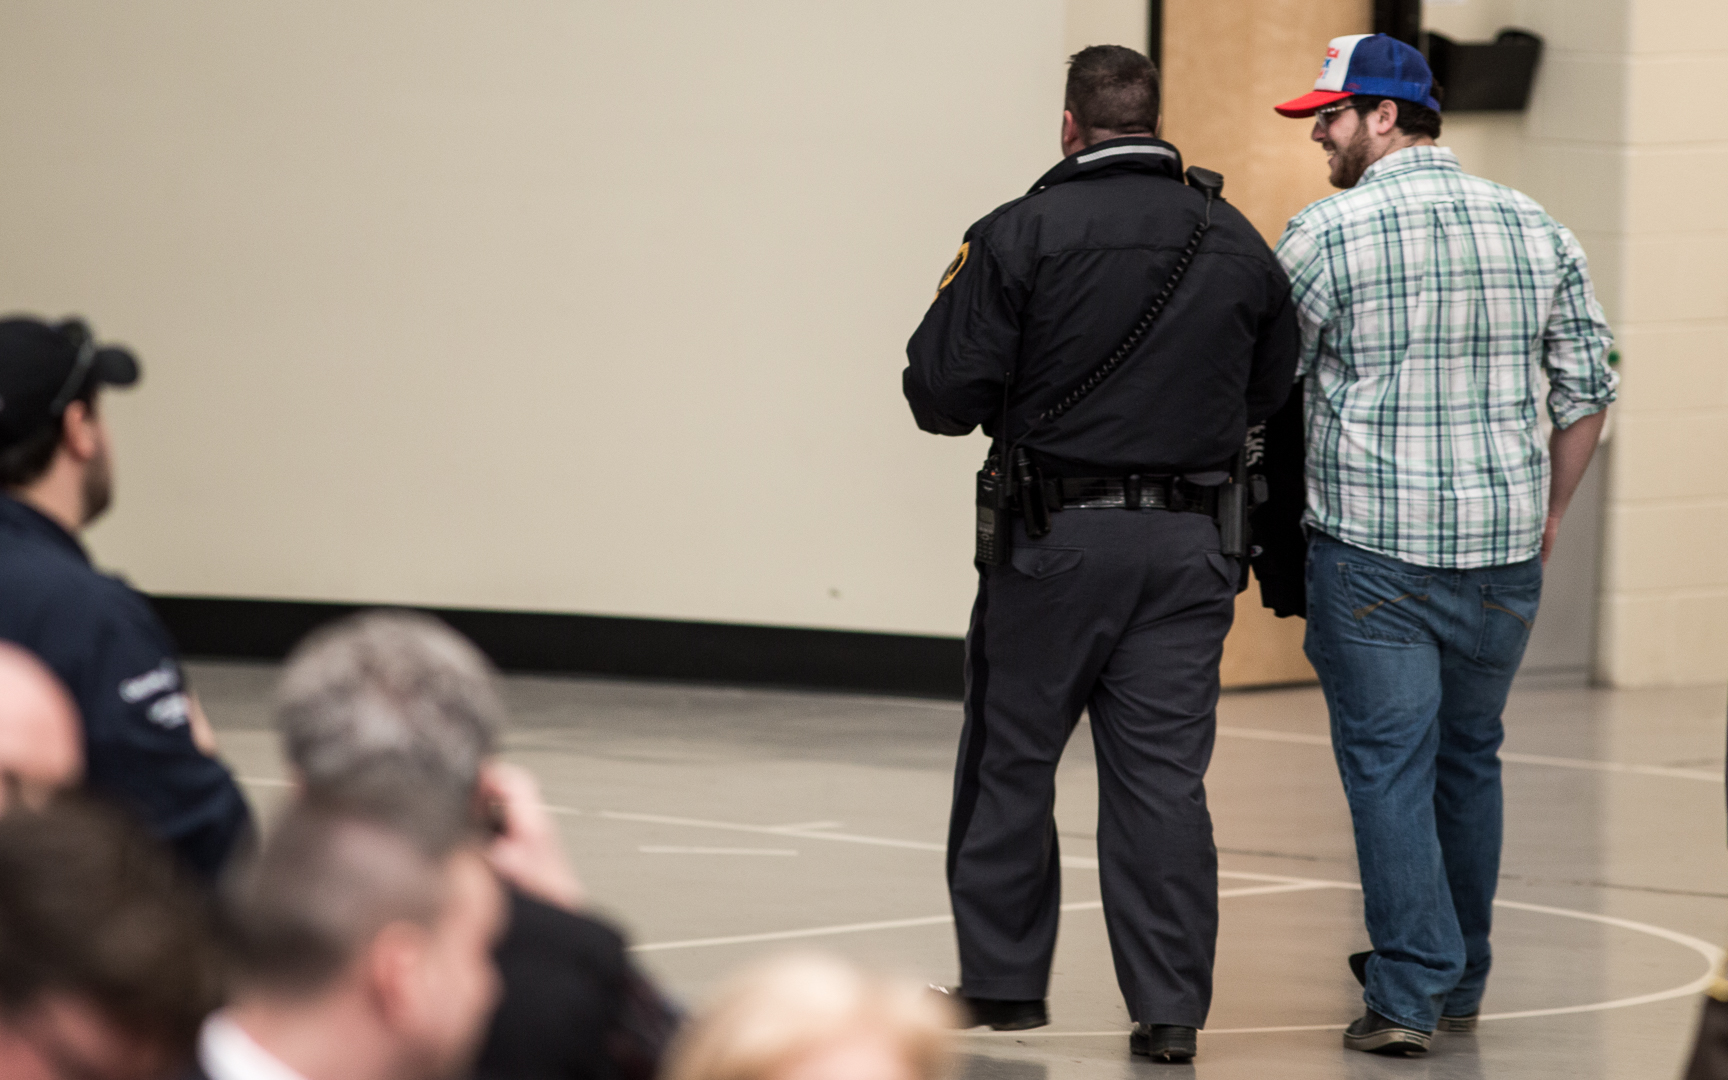 Michael Marmol is escorted from the Dedmon Center after disrupting the rally.